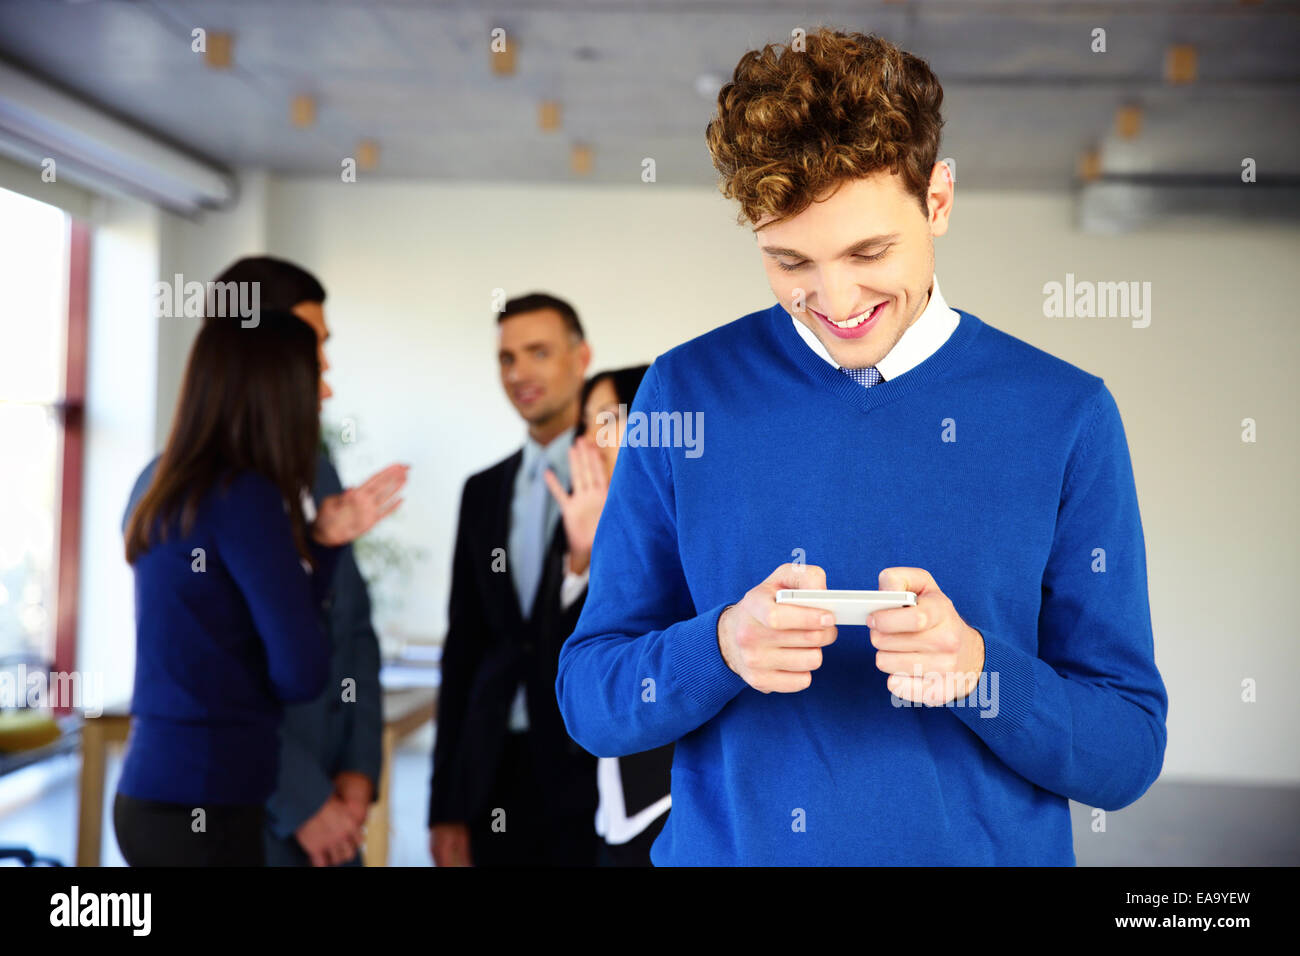 Smiling businessman using smartphone in front of a colleagues - Stock Image